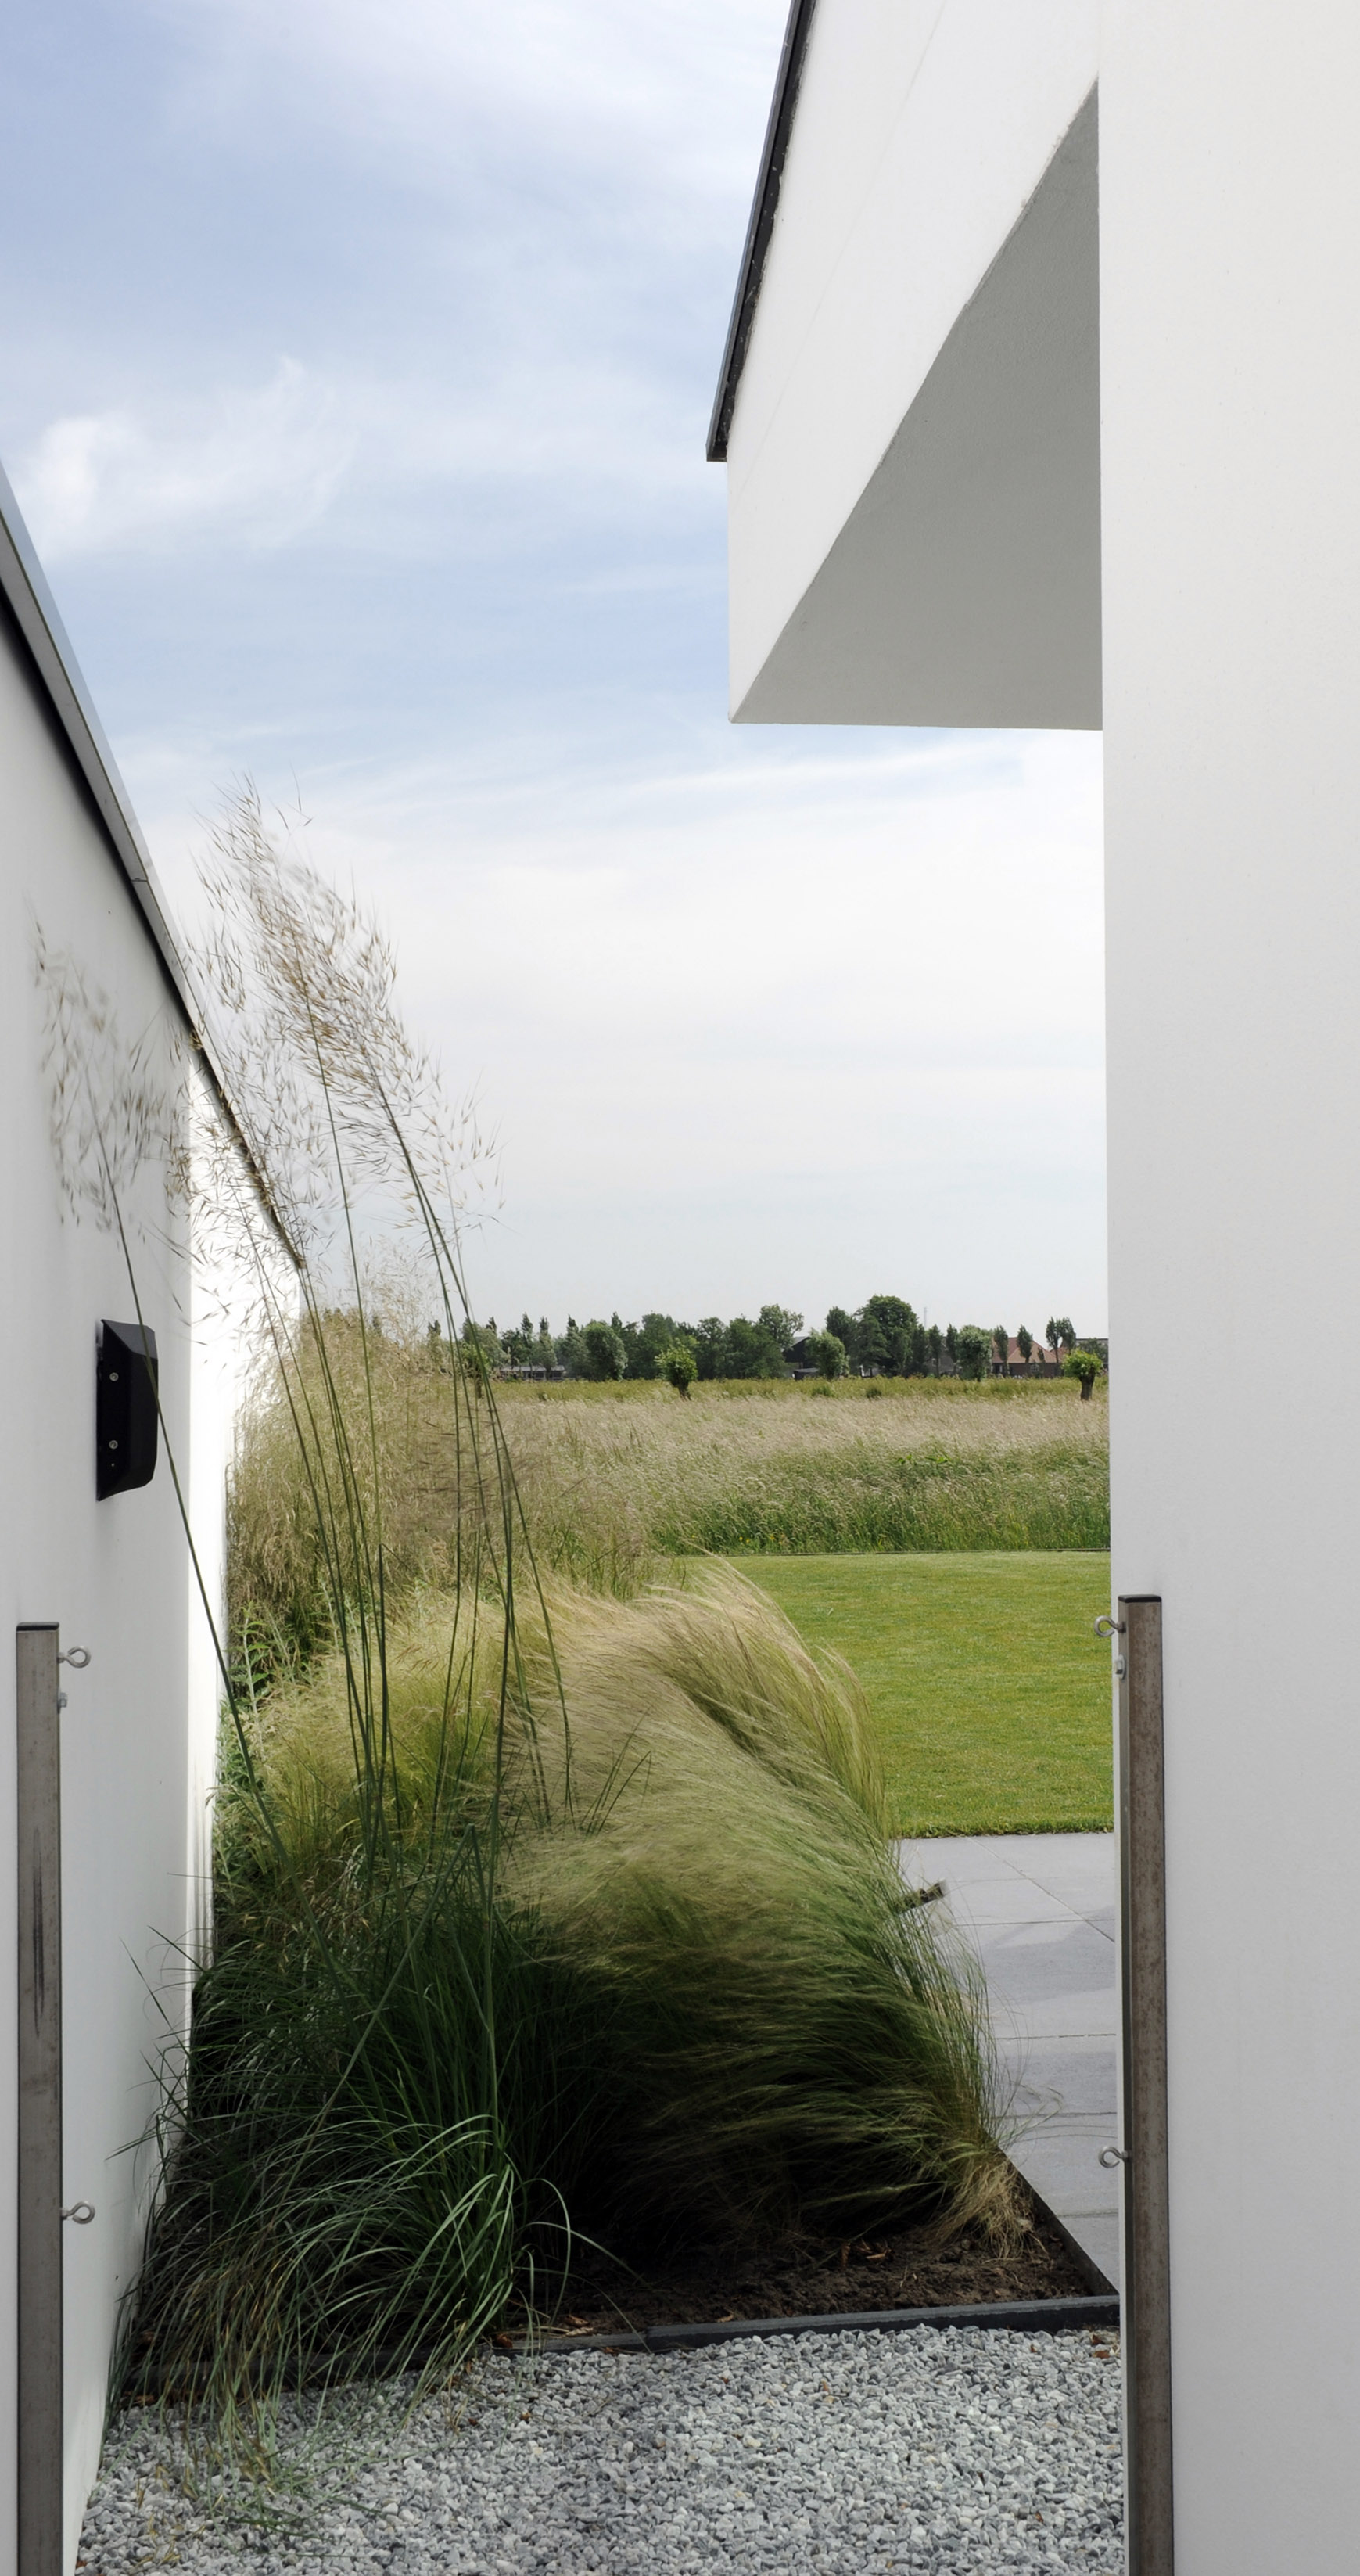 Perennial grassen connecting to the emotion of the fields surrounding the property